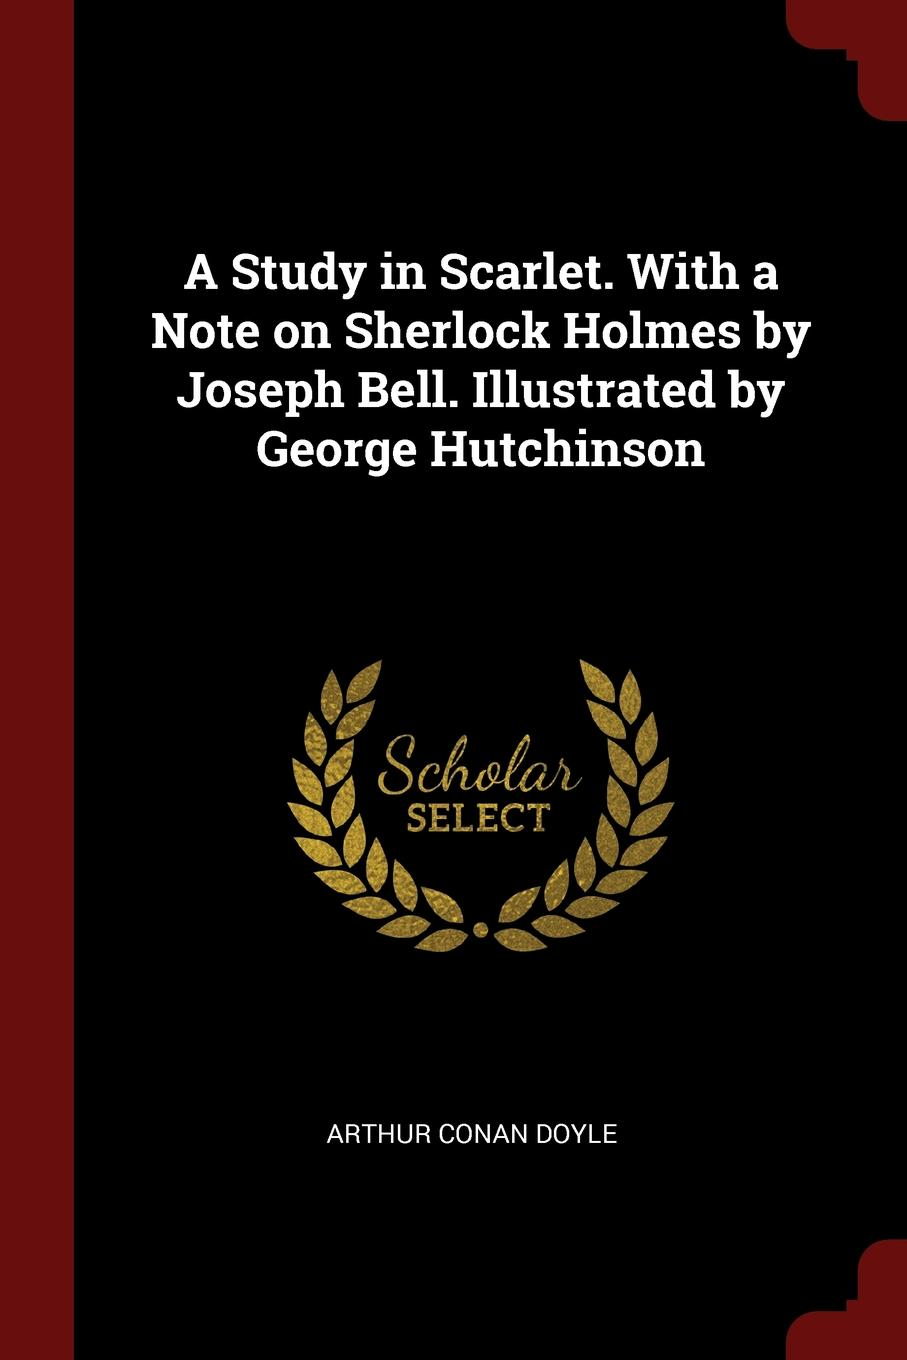 Arthur Conan Doyle A Study in Scarlet. With a Note on Sherlock Holmes by Joseph Bell. Illustrated by George Hutchinson